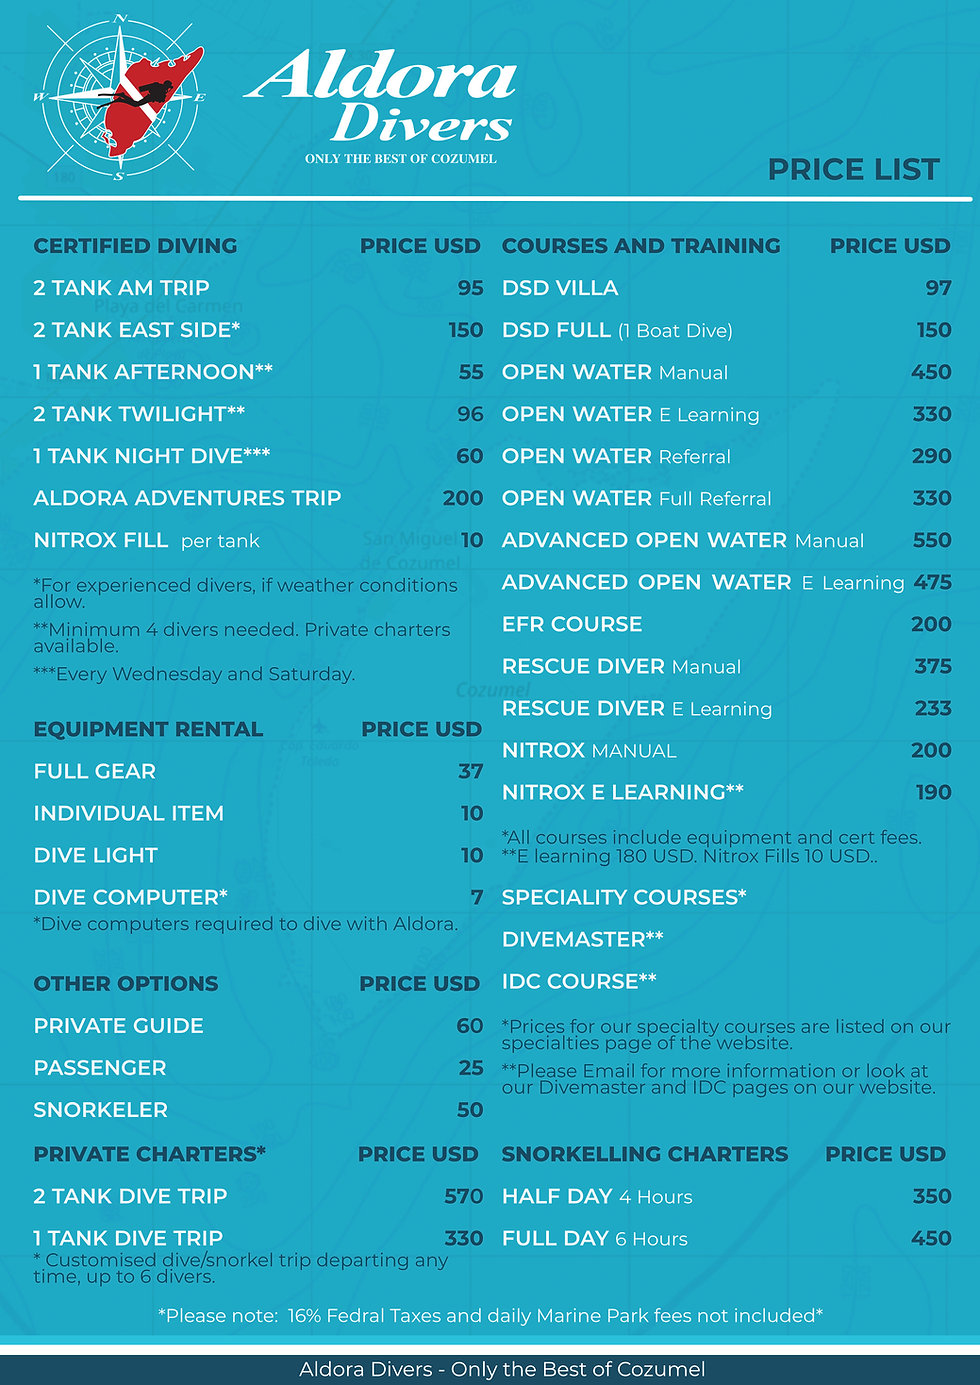 Aldora Price List 2021.jpg